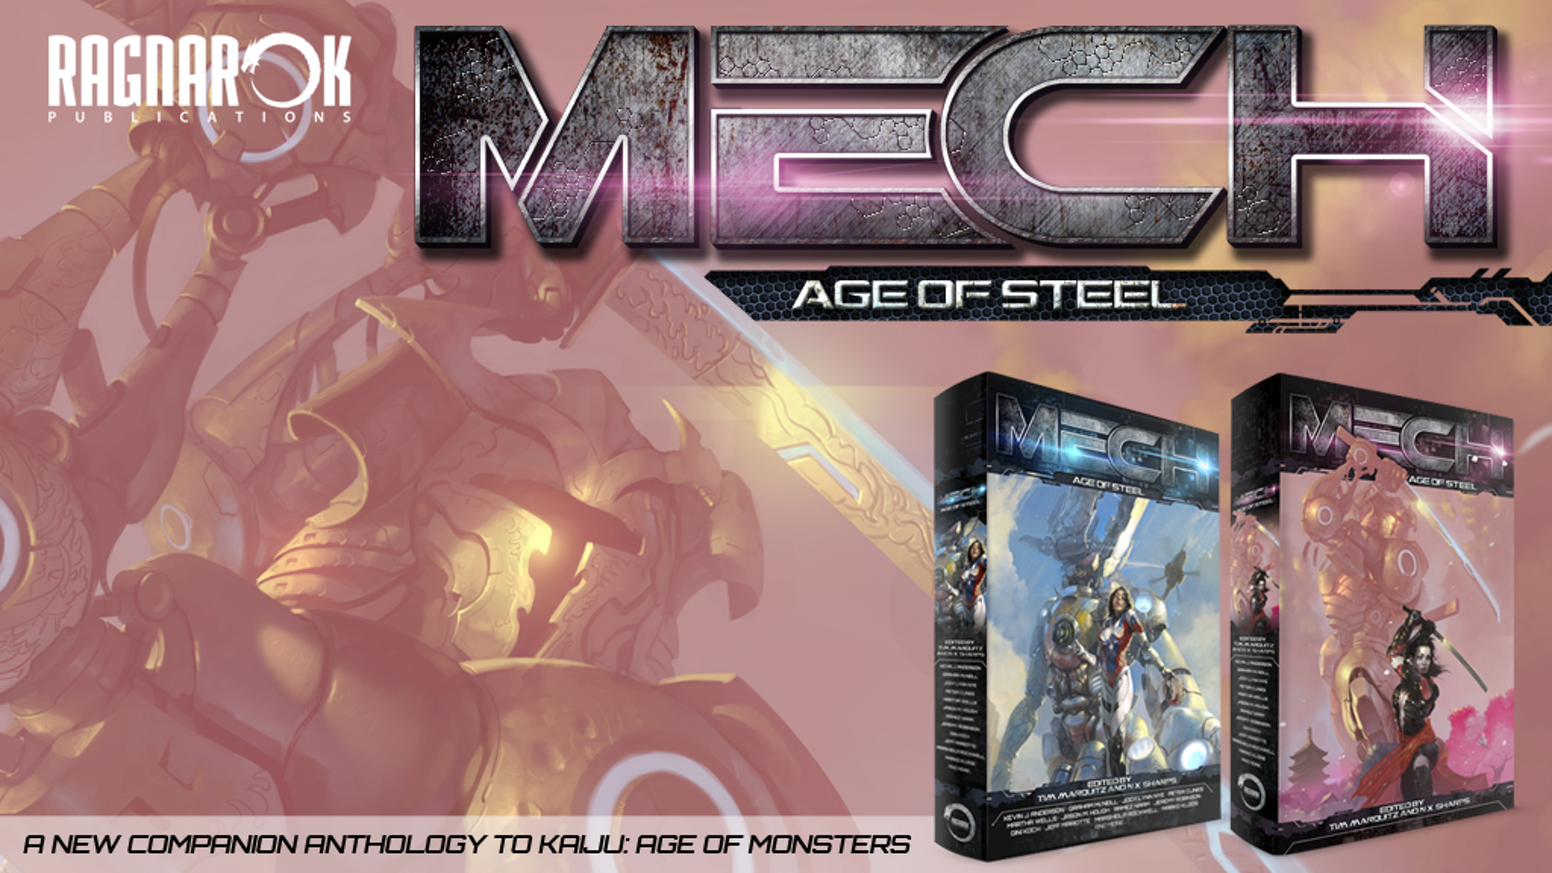 Tales of giant mechs by Kevin J. Anderson, Jody Lynn Nye, Graham McNeill, Gini Koch, Peter Clines, Jason Hough & Ramez Naam and more!